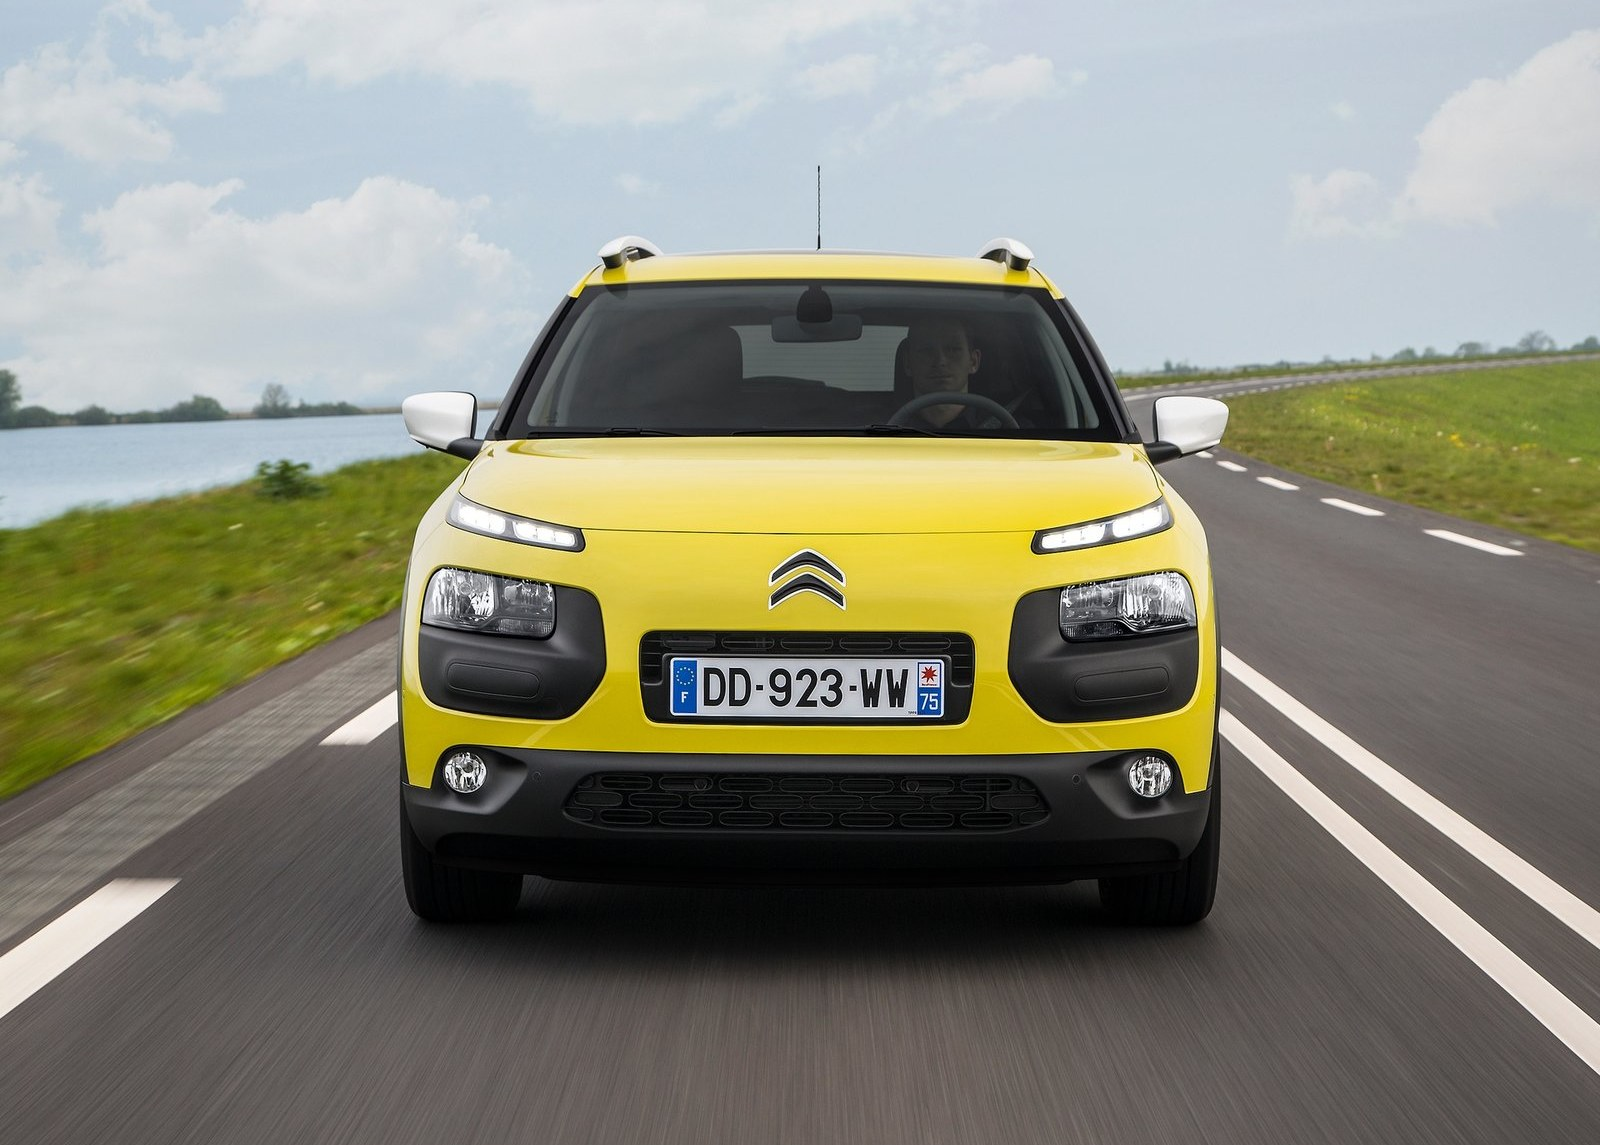 2015 Citroen C4 Cactus Yellow Front End Exterior (Photo 21 of 21)